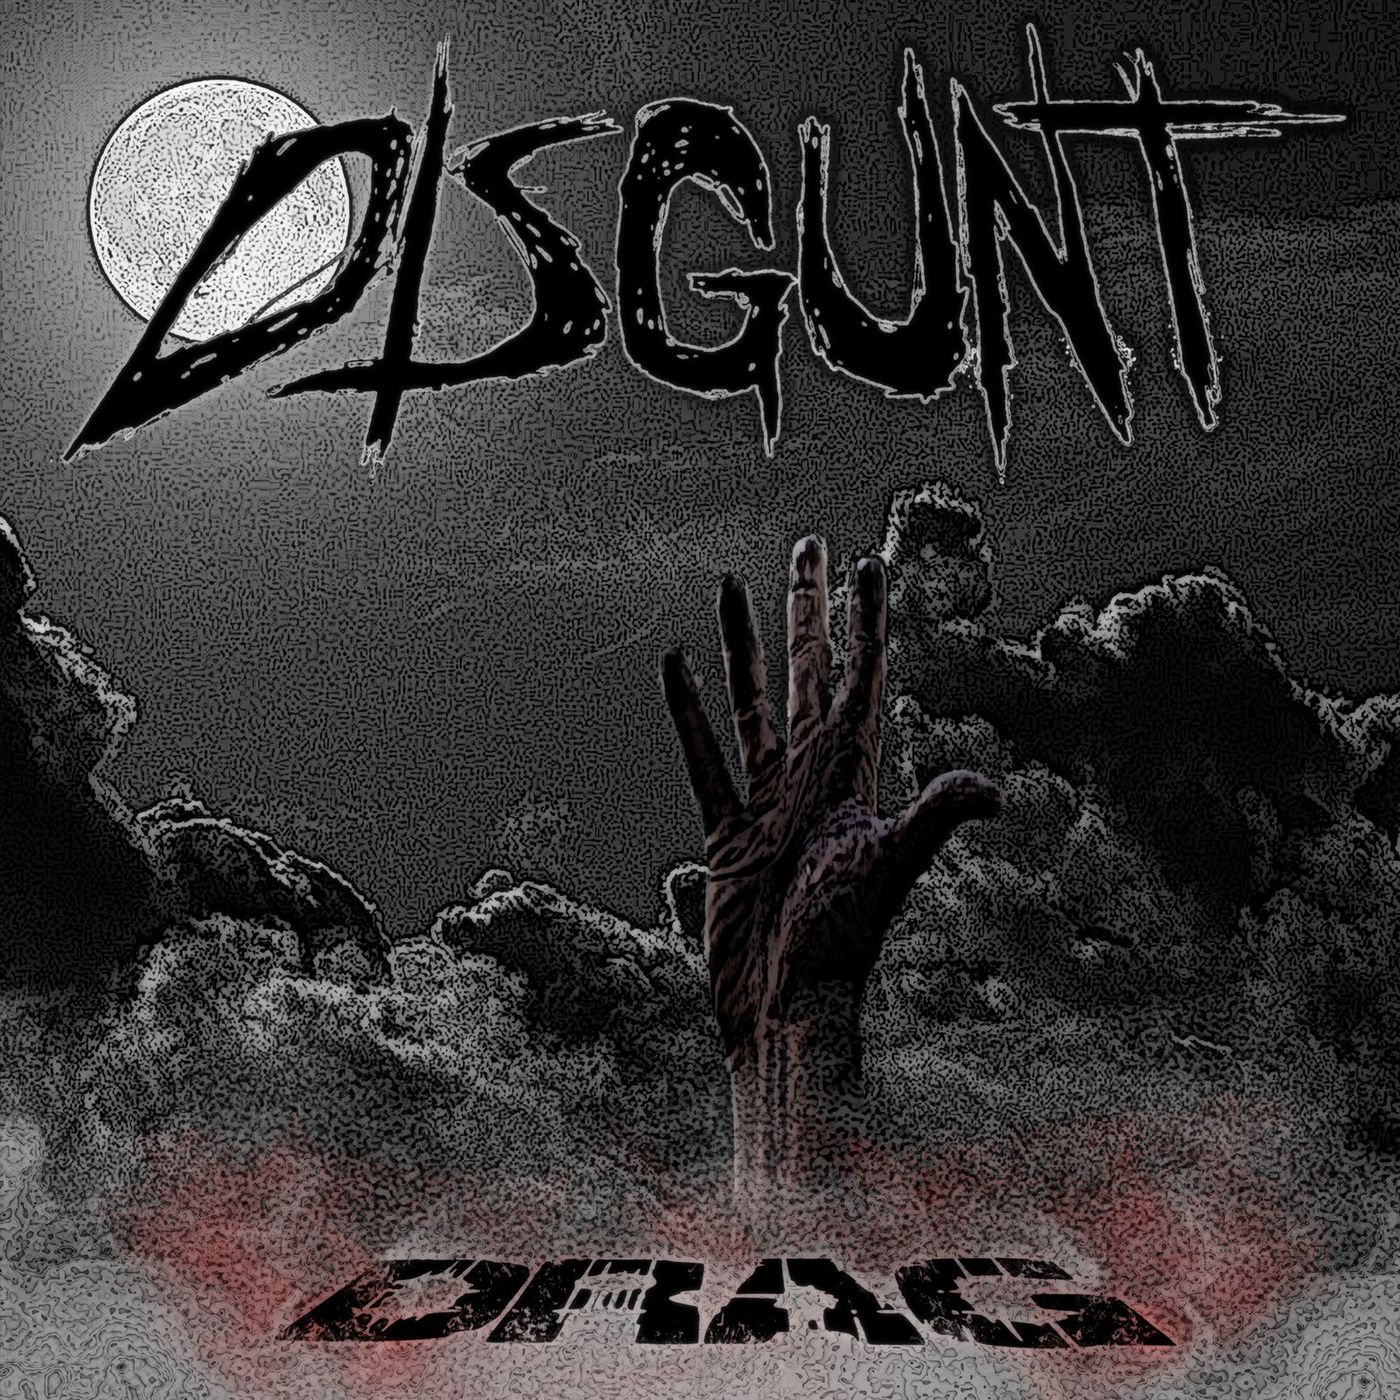 Disgunt - Drag [single] (2020)